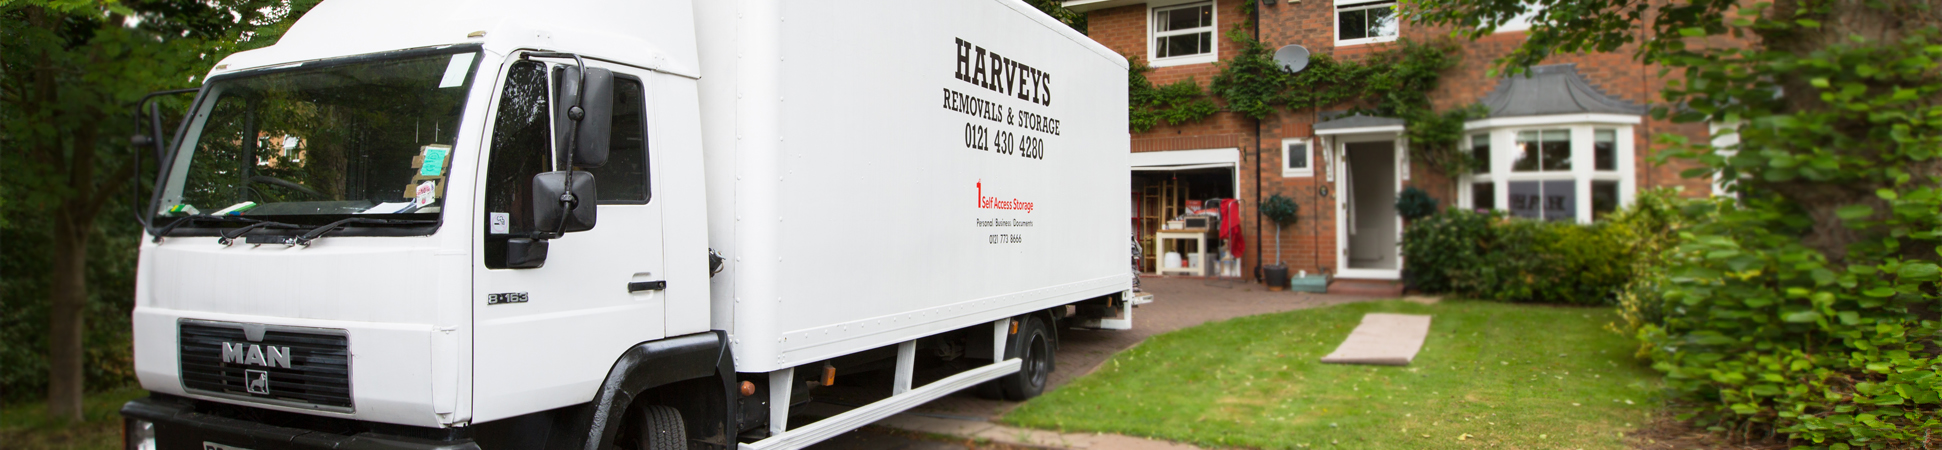 harveys-slider-4